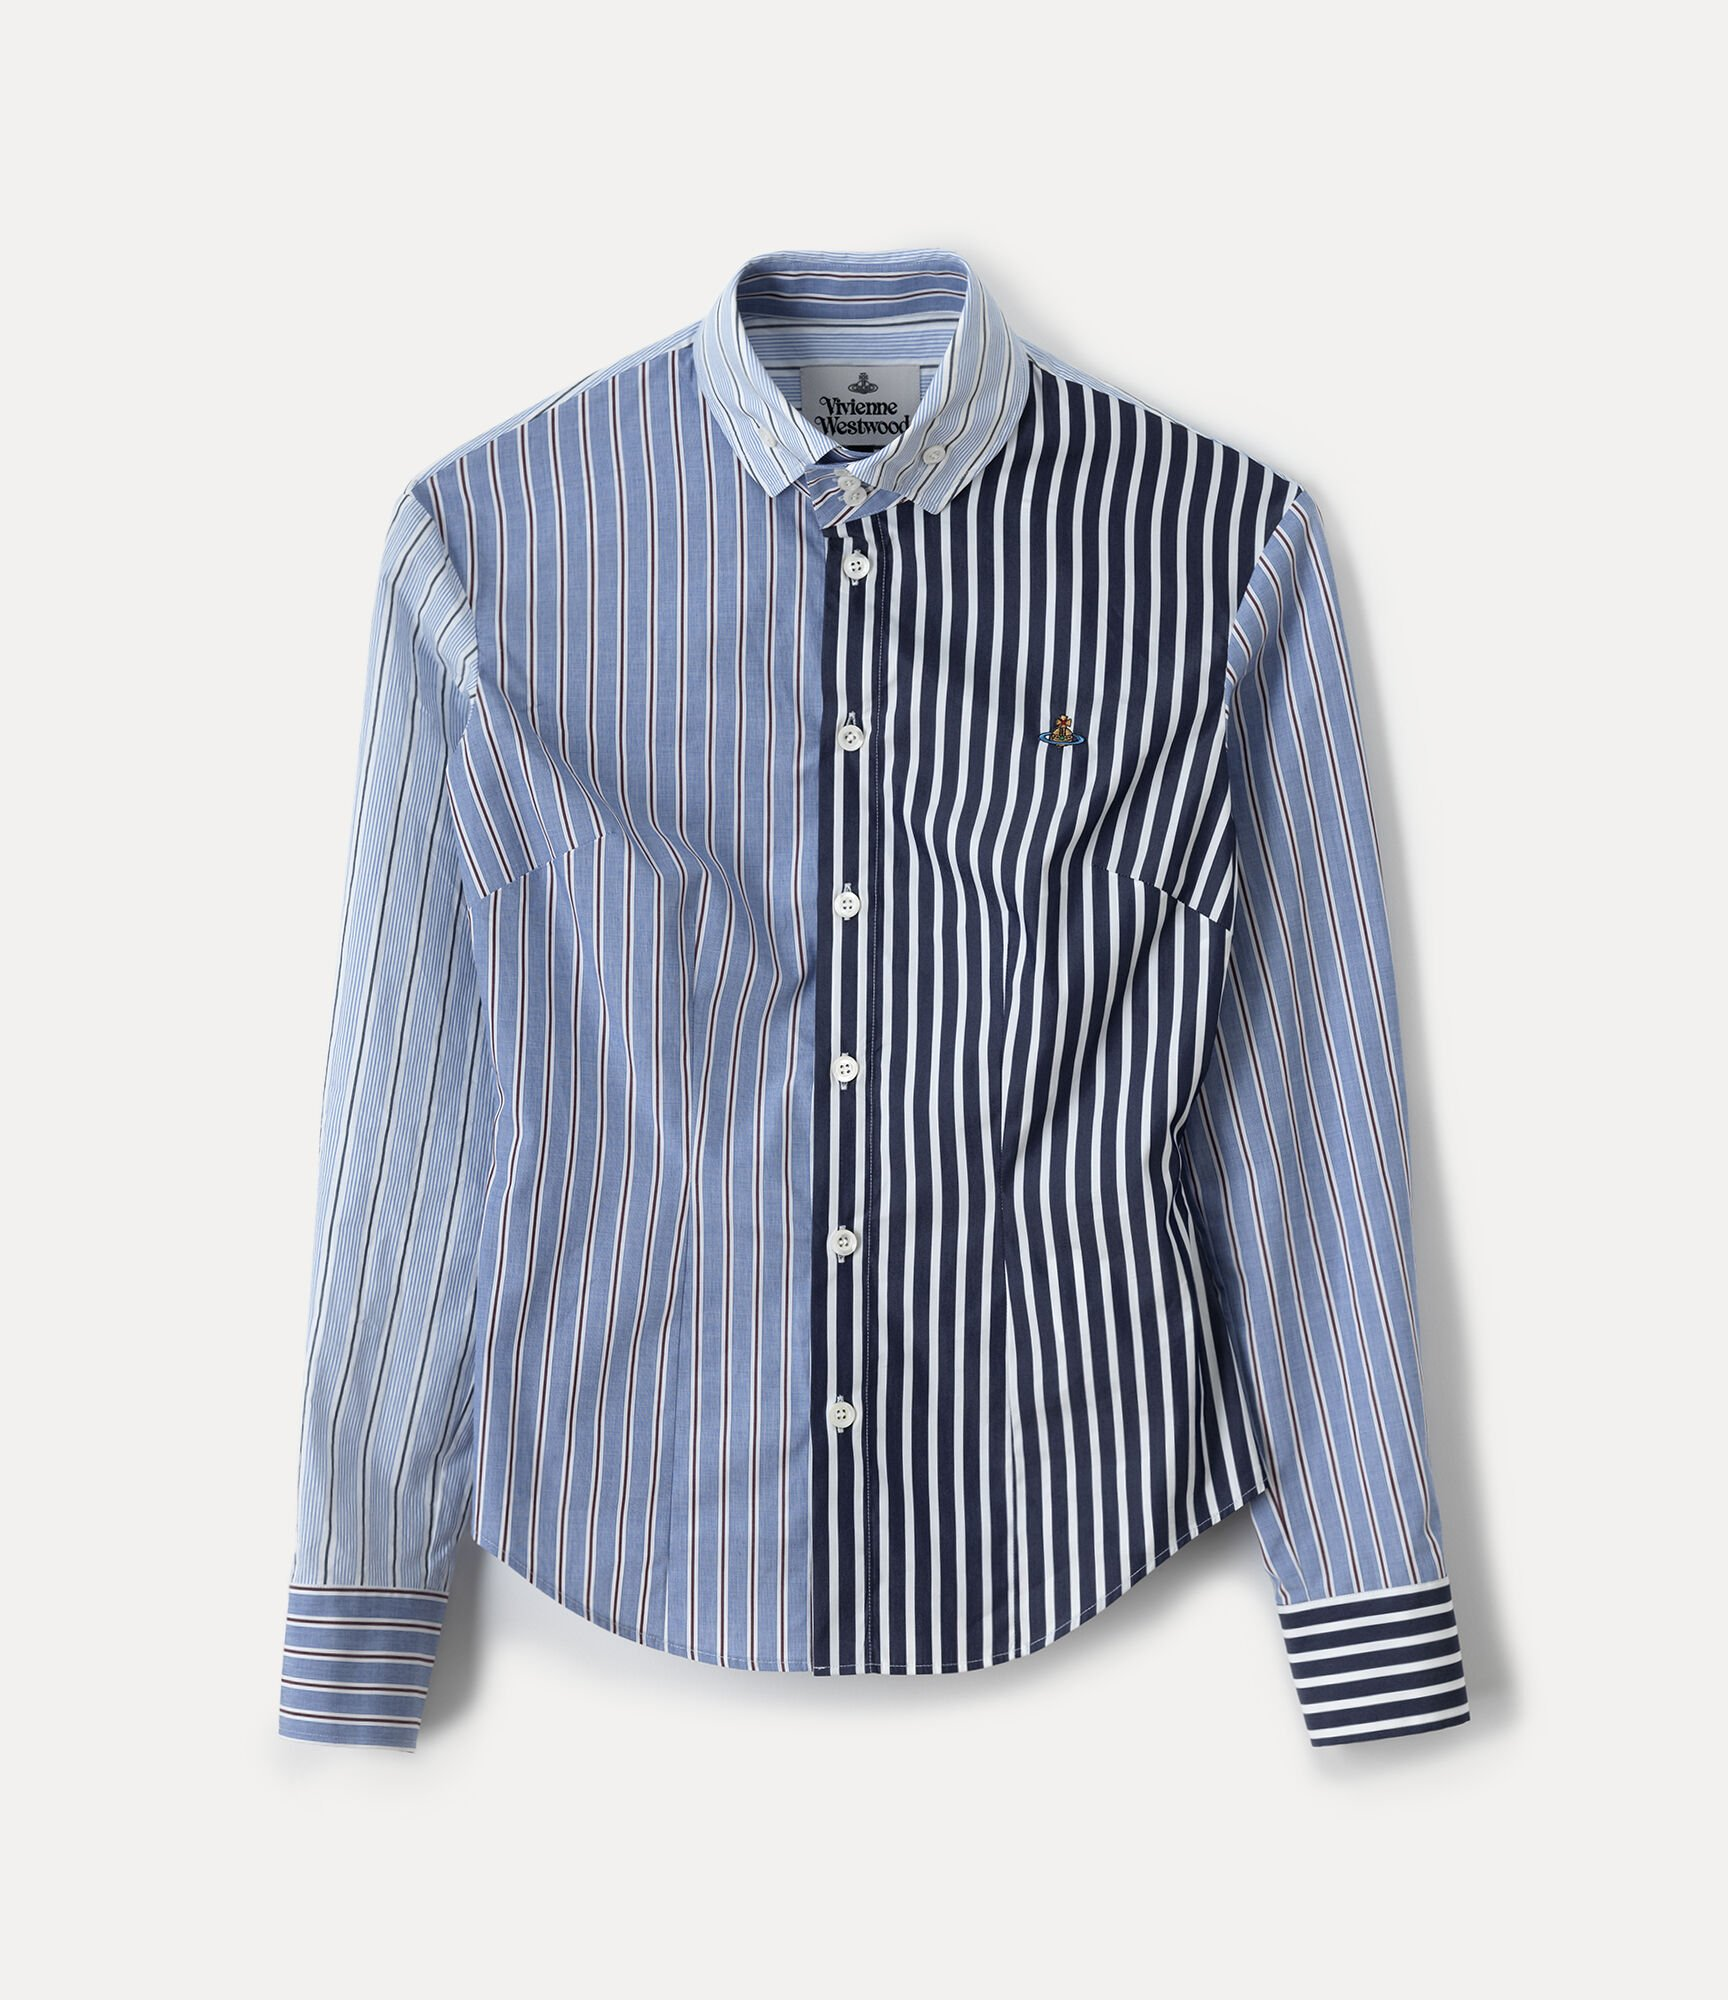 Vivienne Westwood NEW KRALL SHIRT AZURE STRIPES